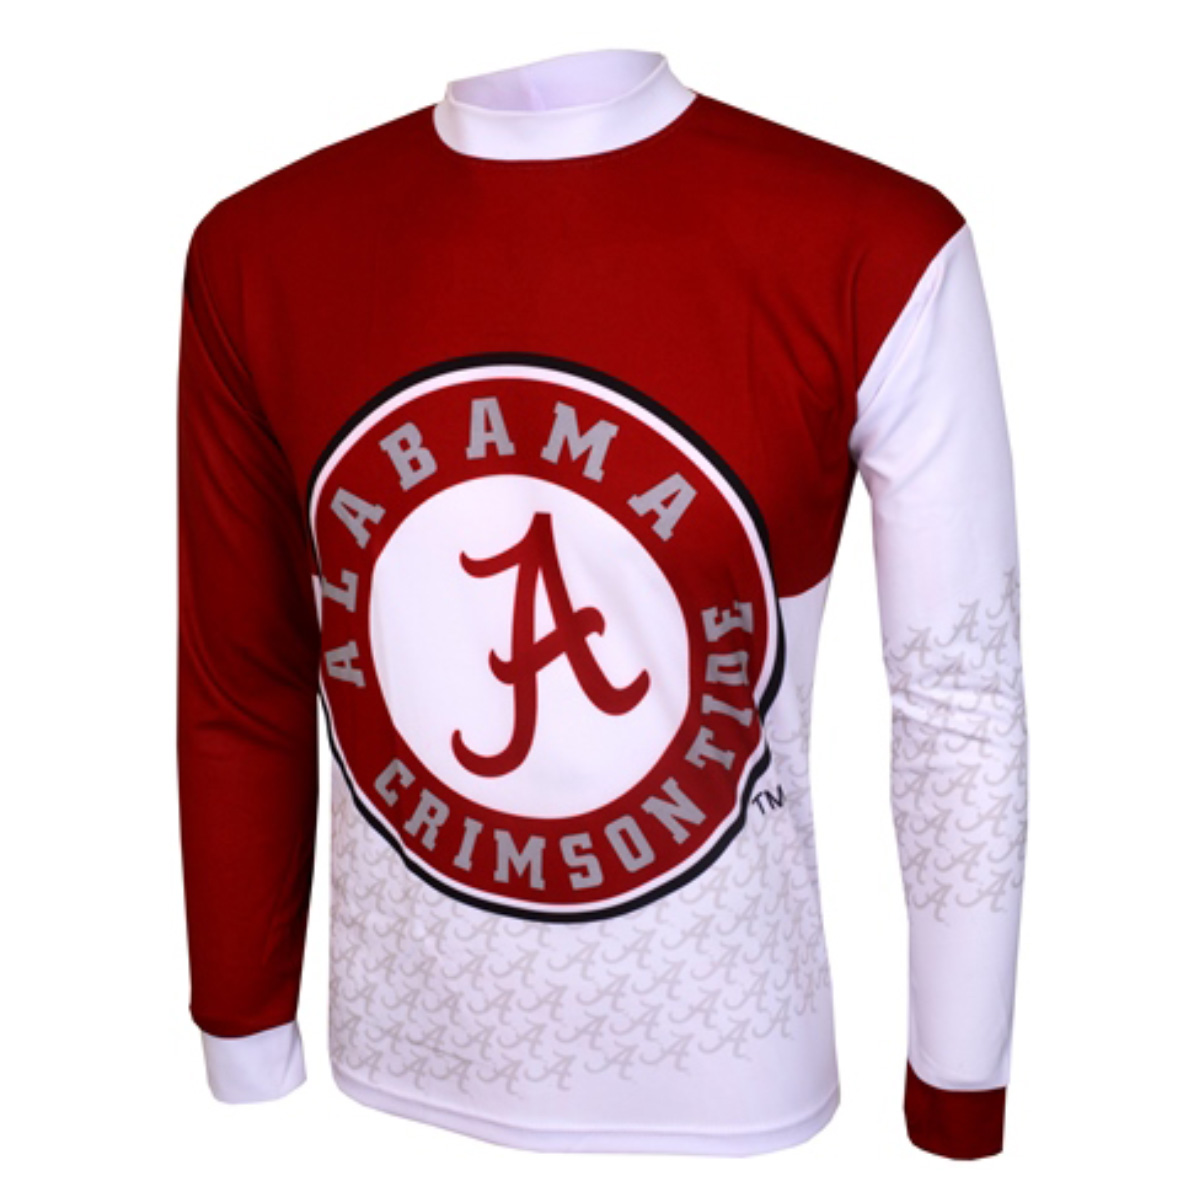 Adrenaline Promotions University of Alabama Crimson Tide Long Sleeve Mountain Bike Jersey